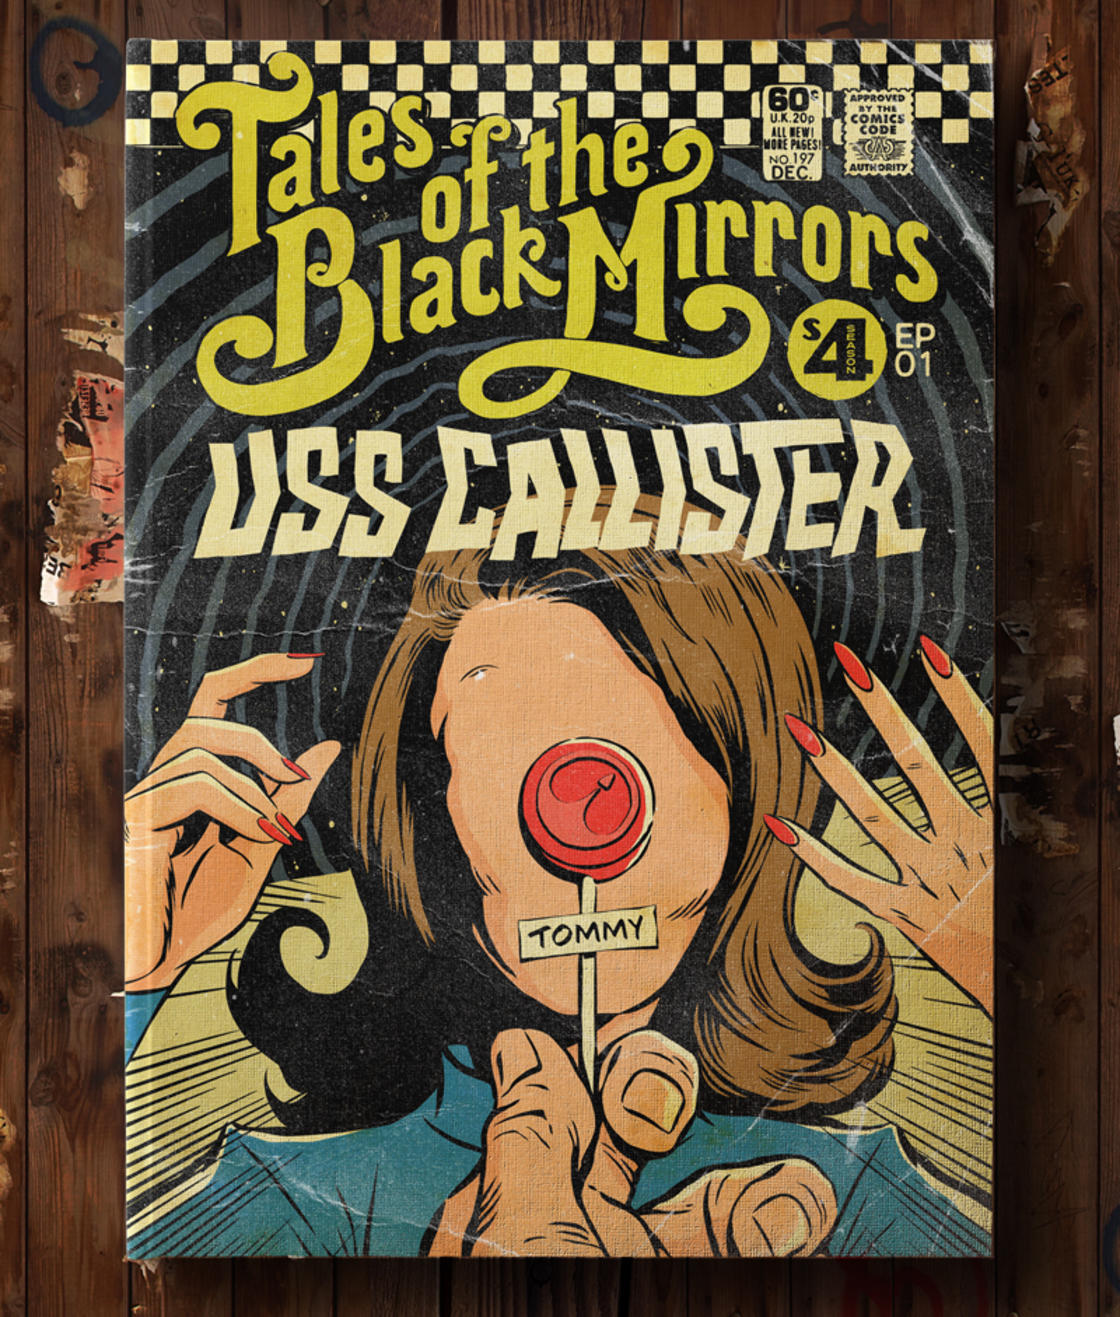 Fictional Comic Book Covers of the TV Series Black Mirror